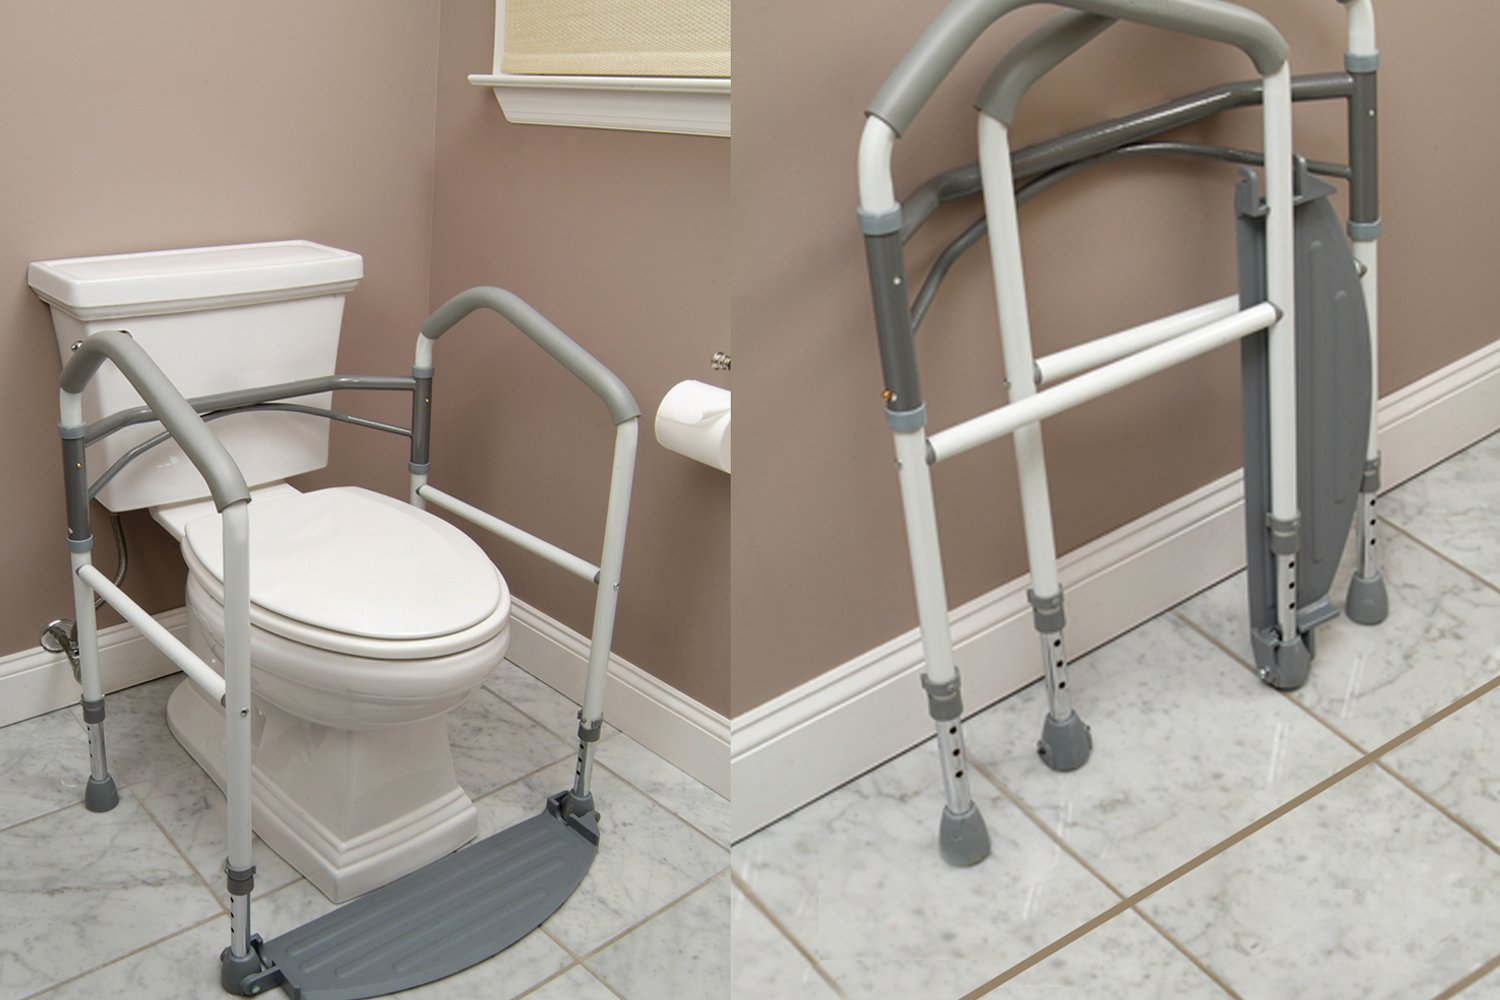 Amazon.com: Foldeasy Toilet Safety Frame: Health & Personal Care